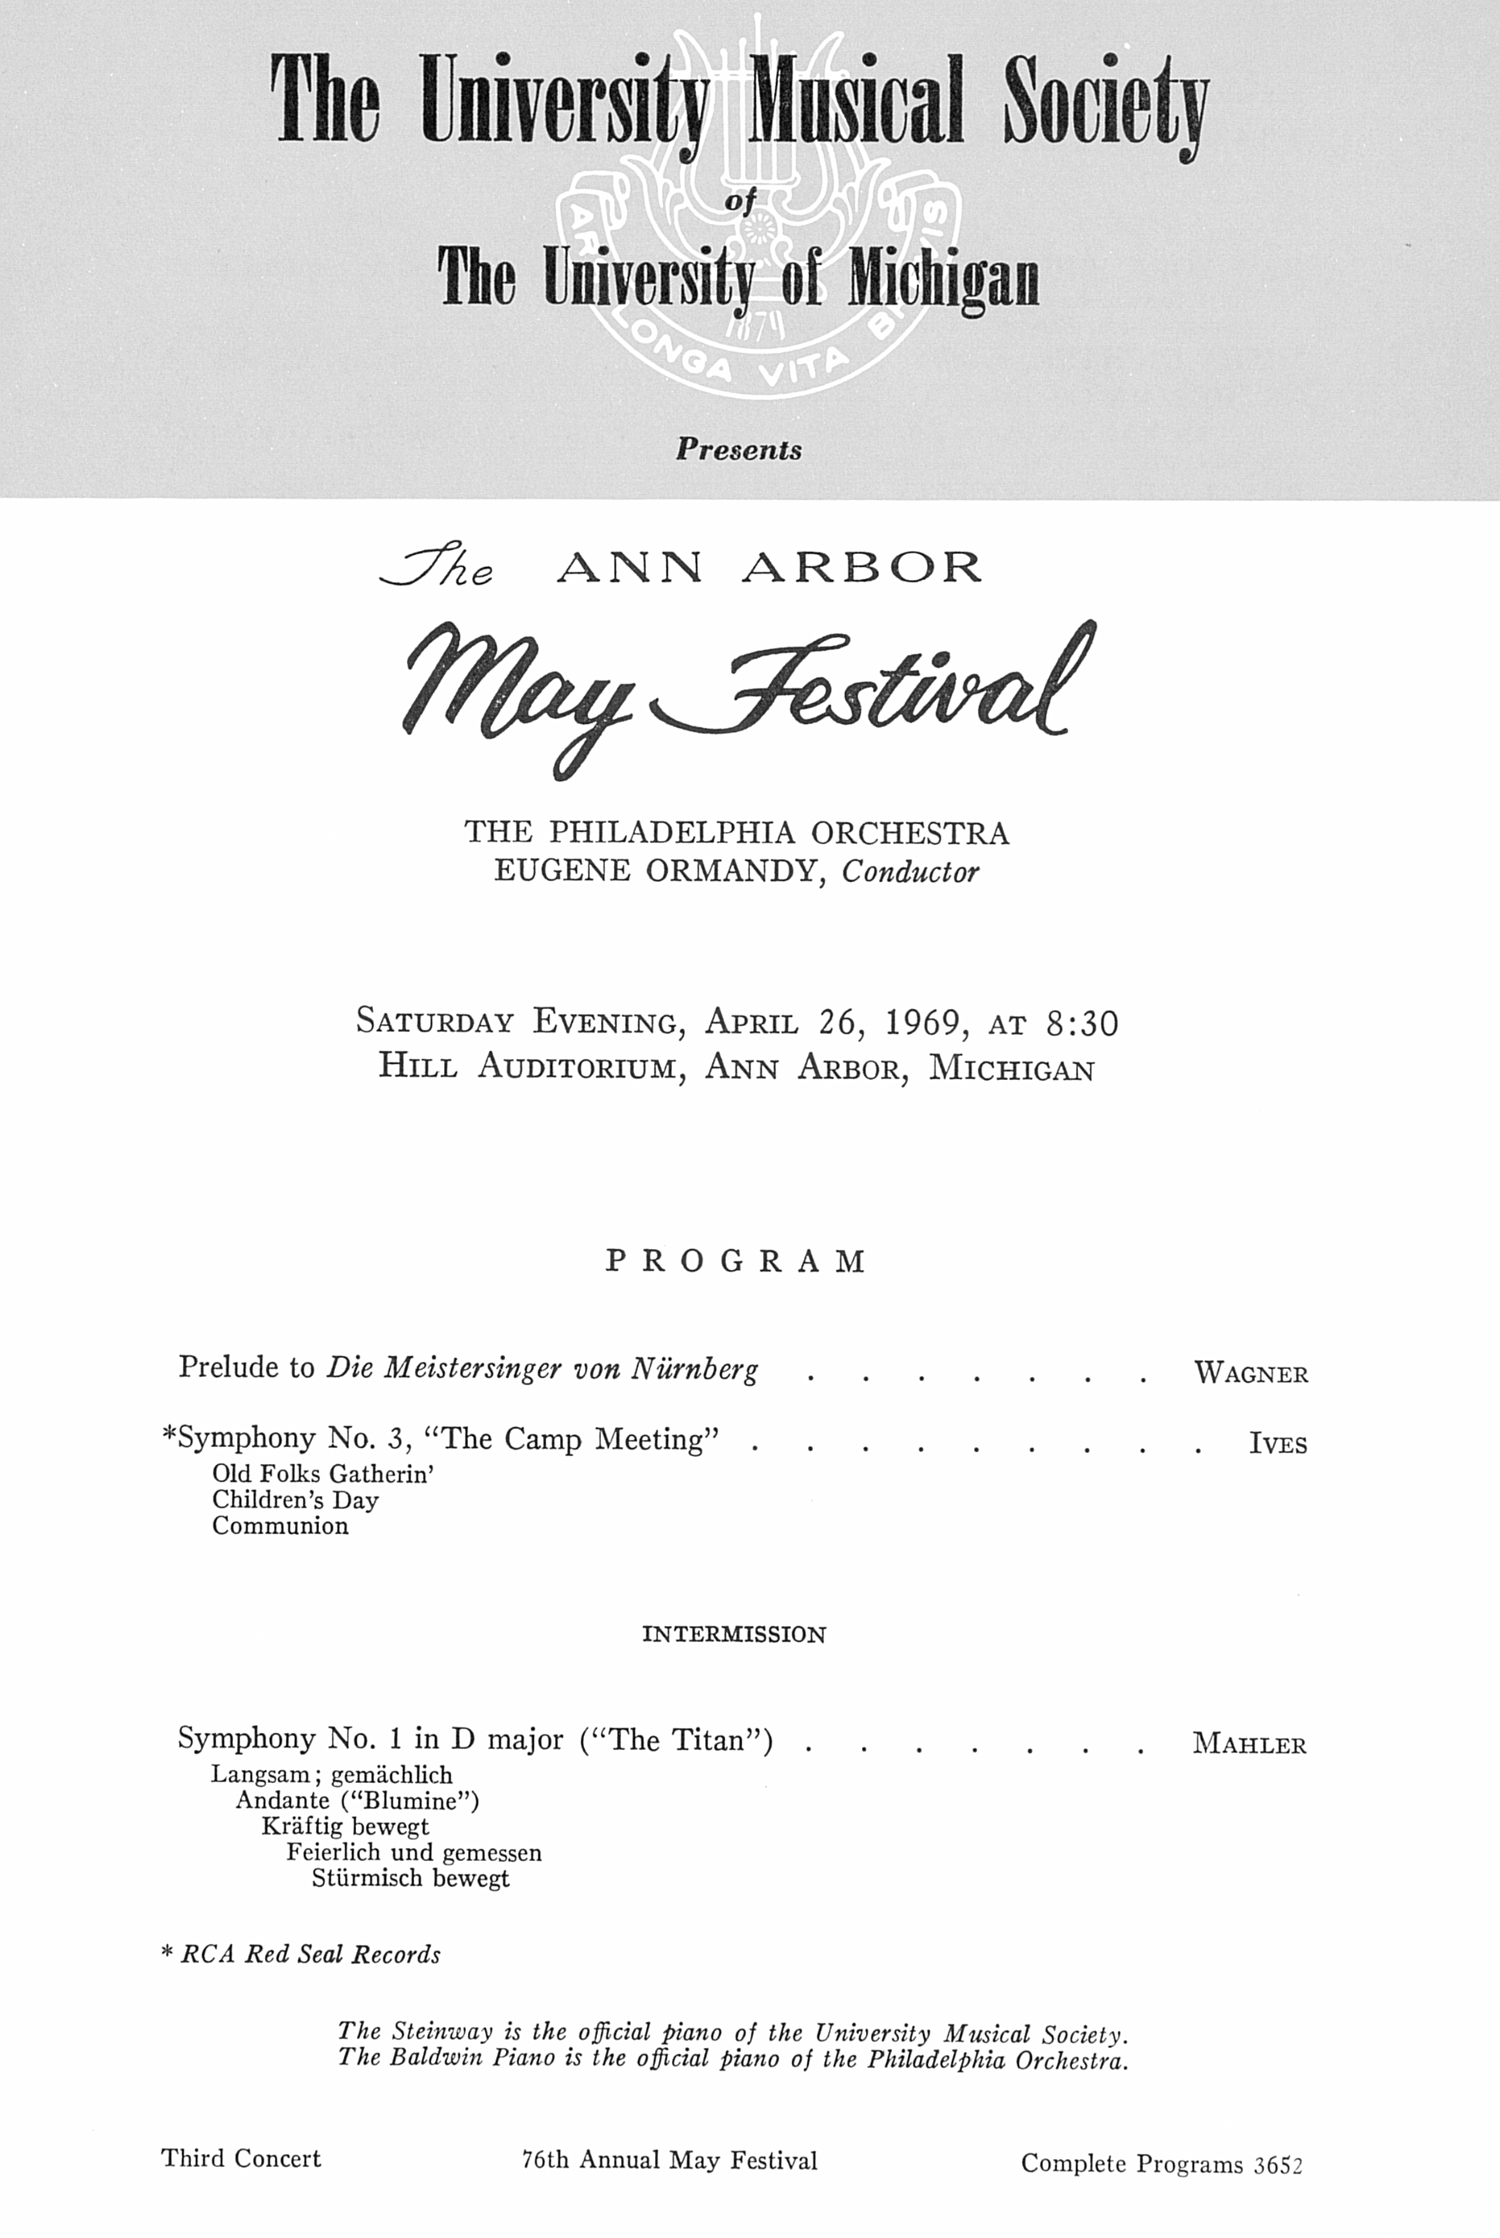 UMS Concert Program, April 25, 1969: The Ann Arbor May Festival -- The Philadelphia Orchestra image